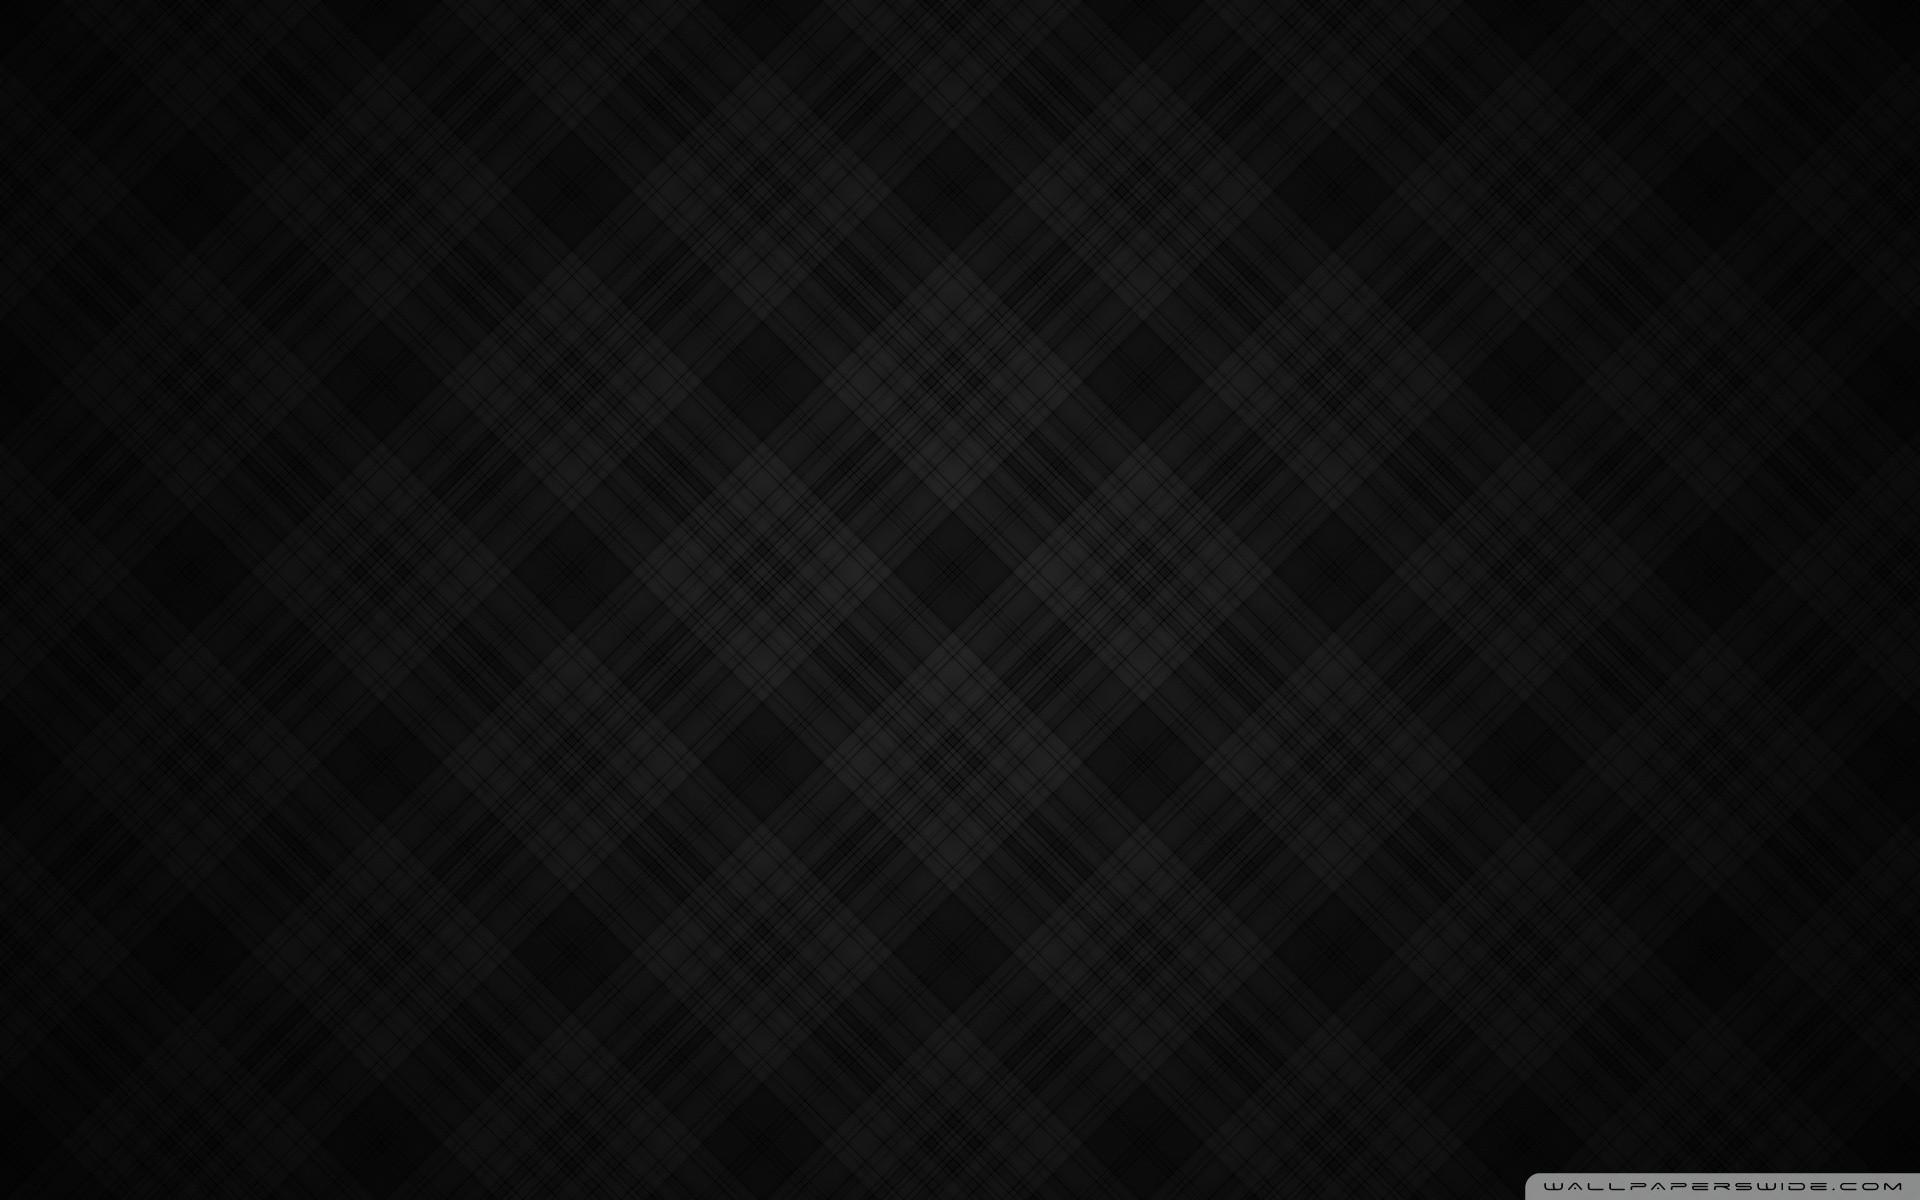 Res: 1920x1200, World Map Wallpaper Hd 1366x768 Fresh Black Carbon Wallpaper Collection 62  Inspirationa High Definition Collection Black